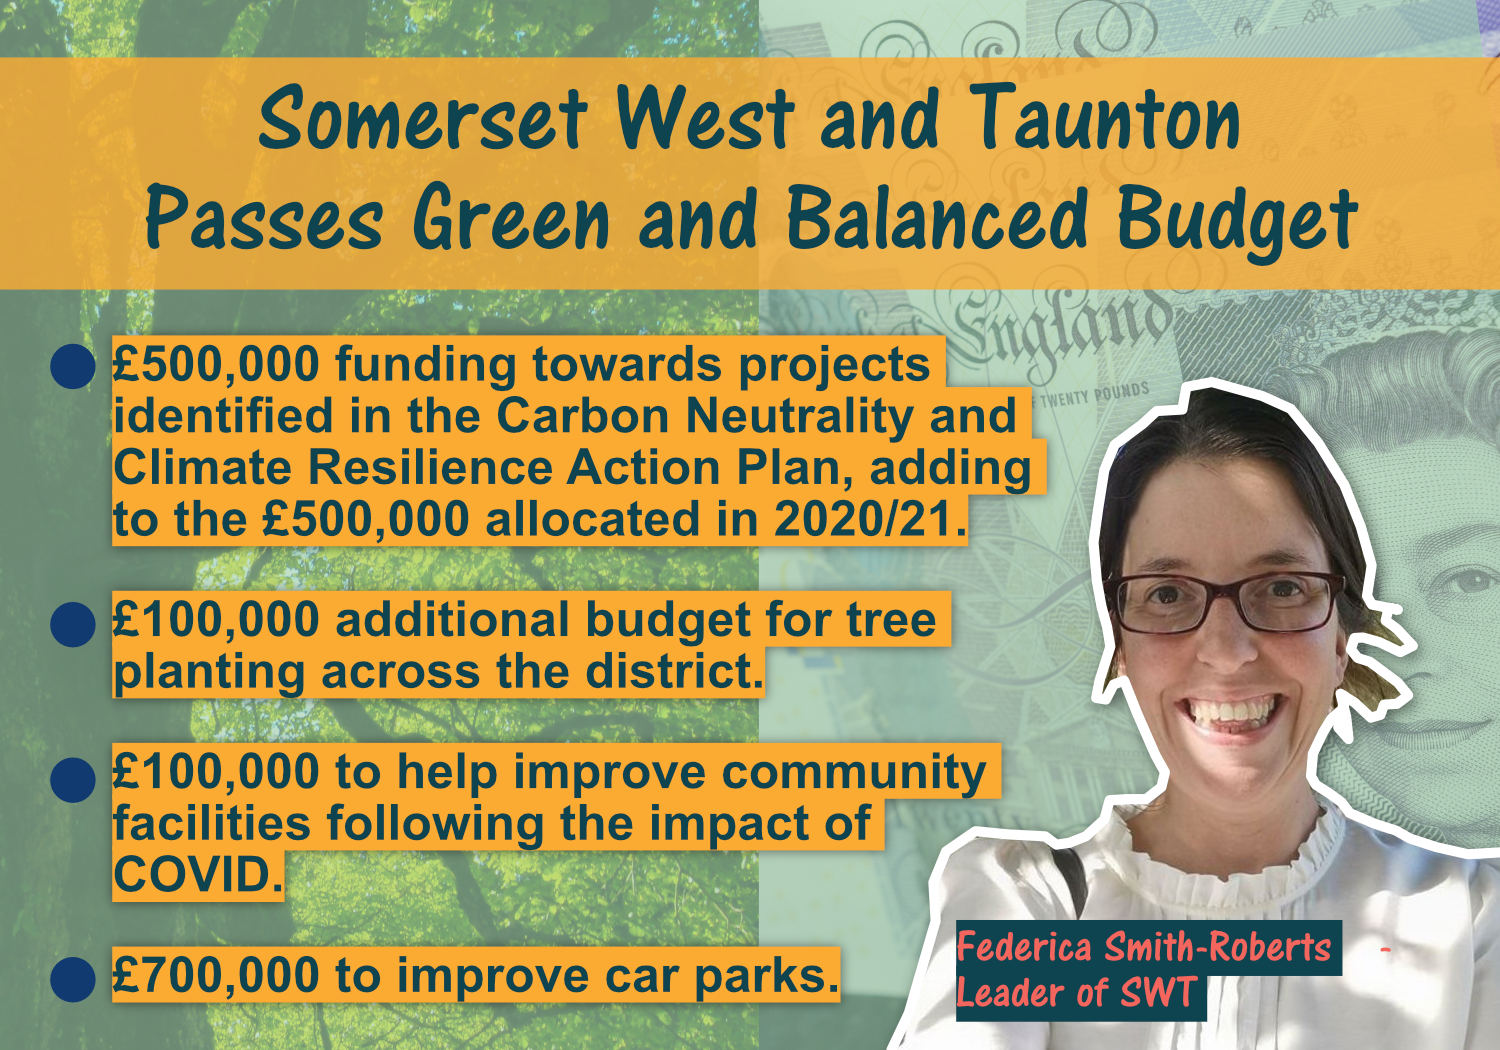 Somerset West and Taunton Council Passes Green and Balanced Budget